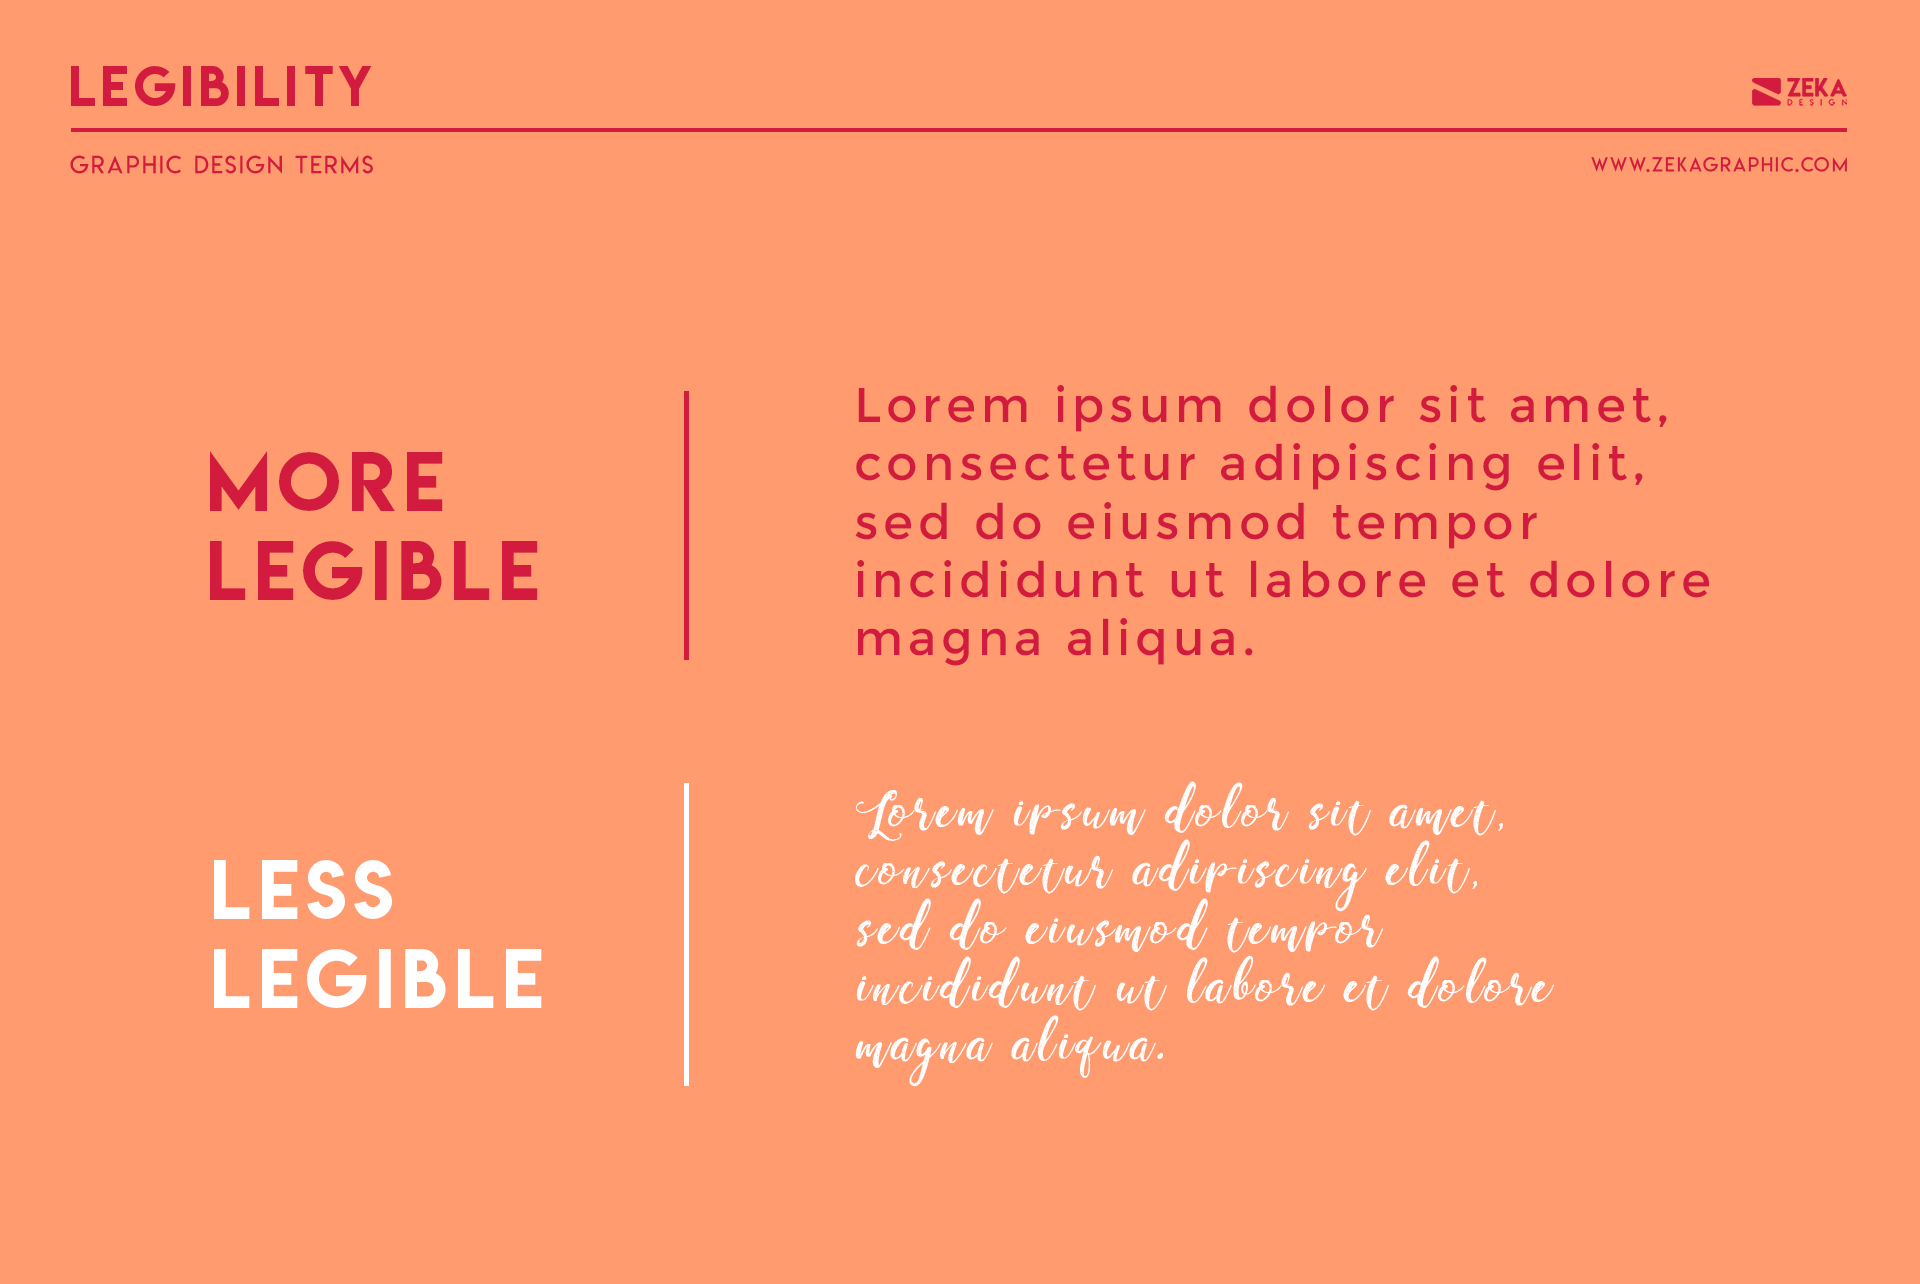 Legibility Graphic Design Terms about typography